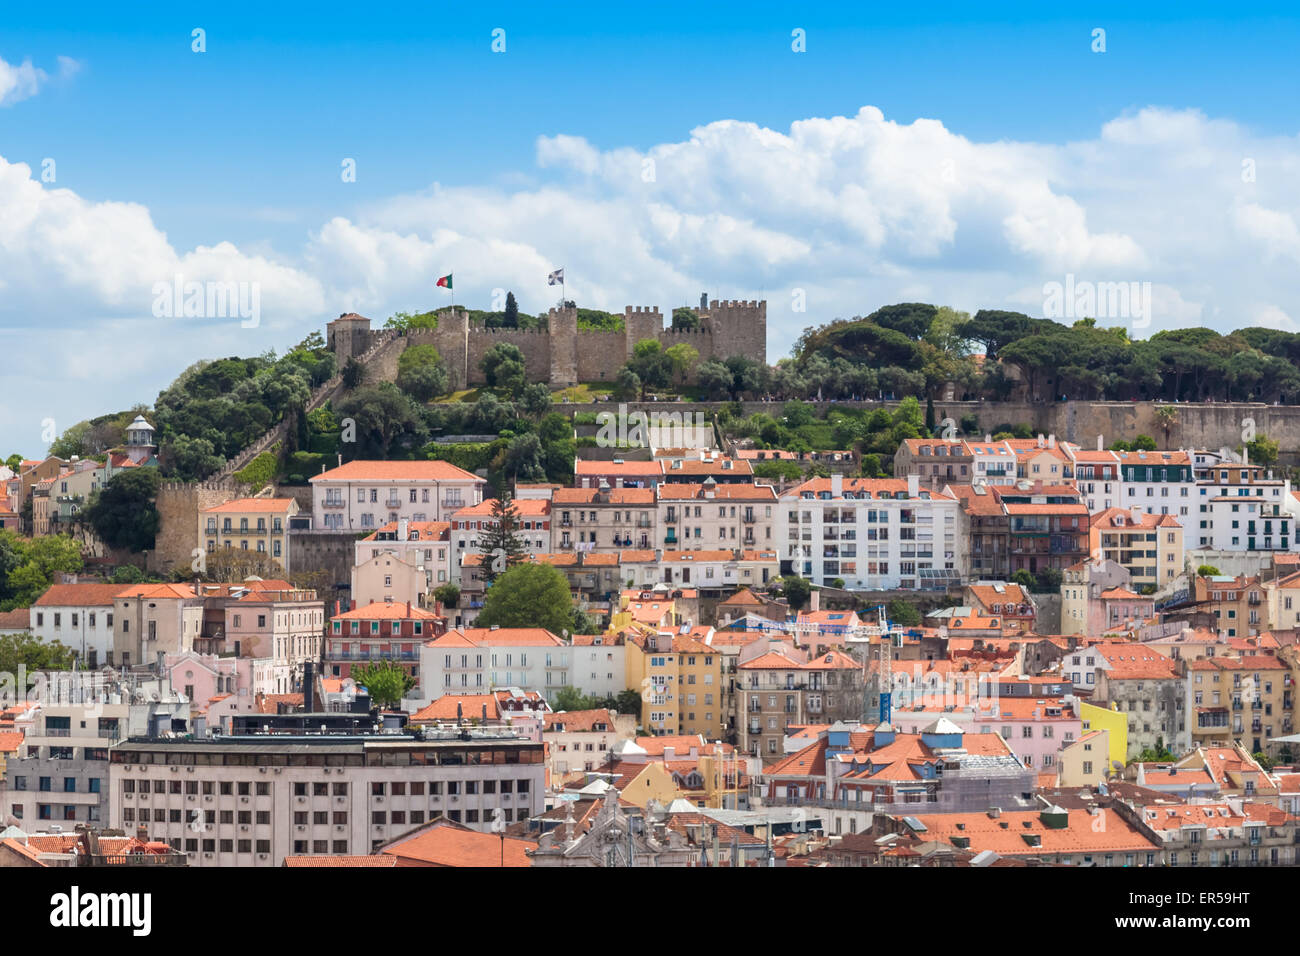 Lisbon St Jorge Castle from Sao Pedro de Alcantara viewpoint - Miradouro in Portugal - Stock Image